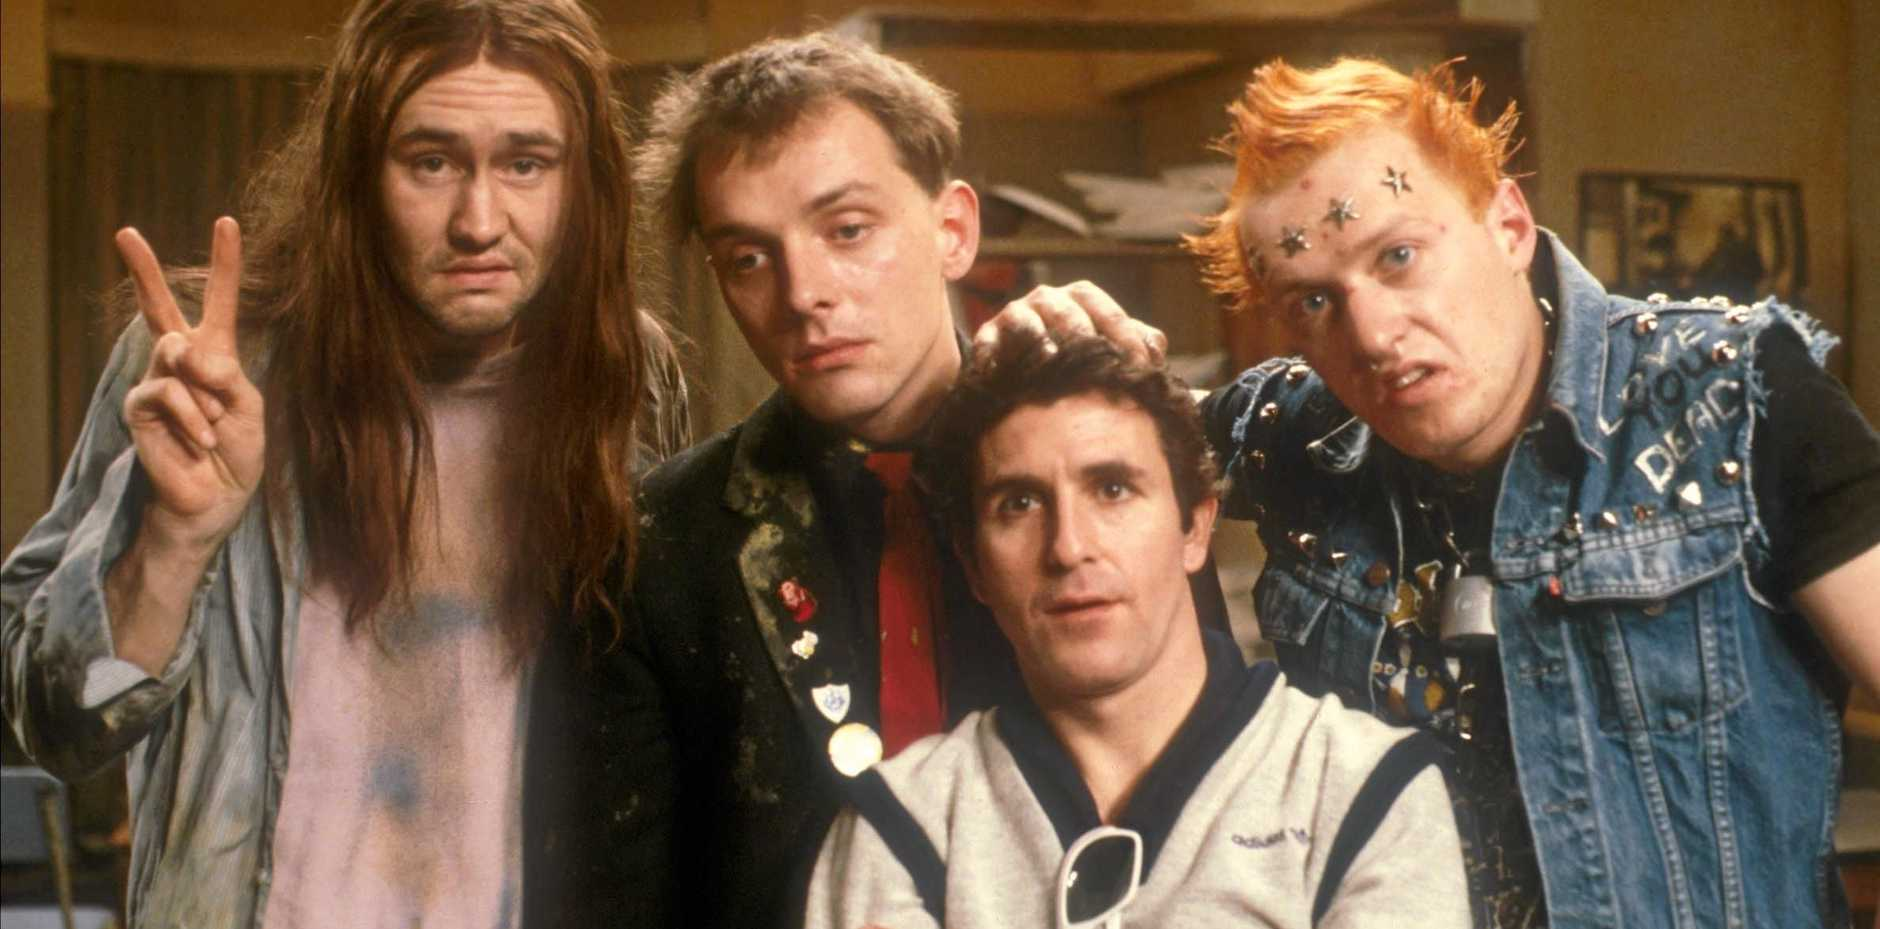 Neil, Rik, Mike and Vyvyan from The Young Ones